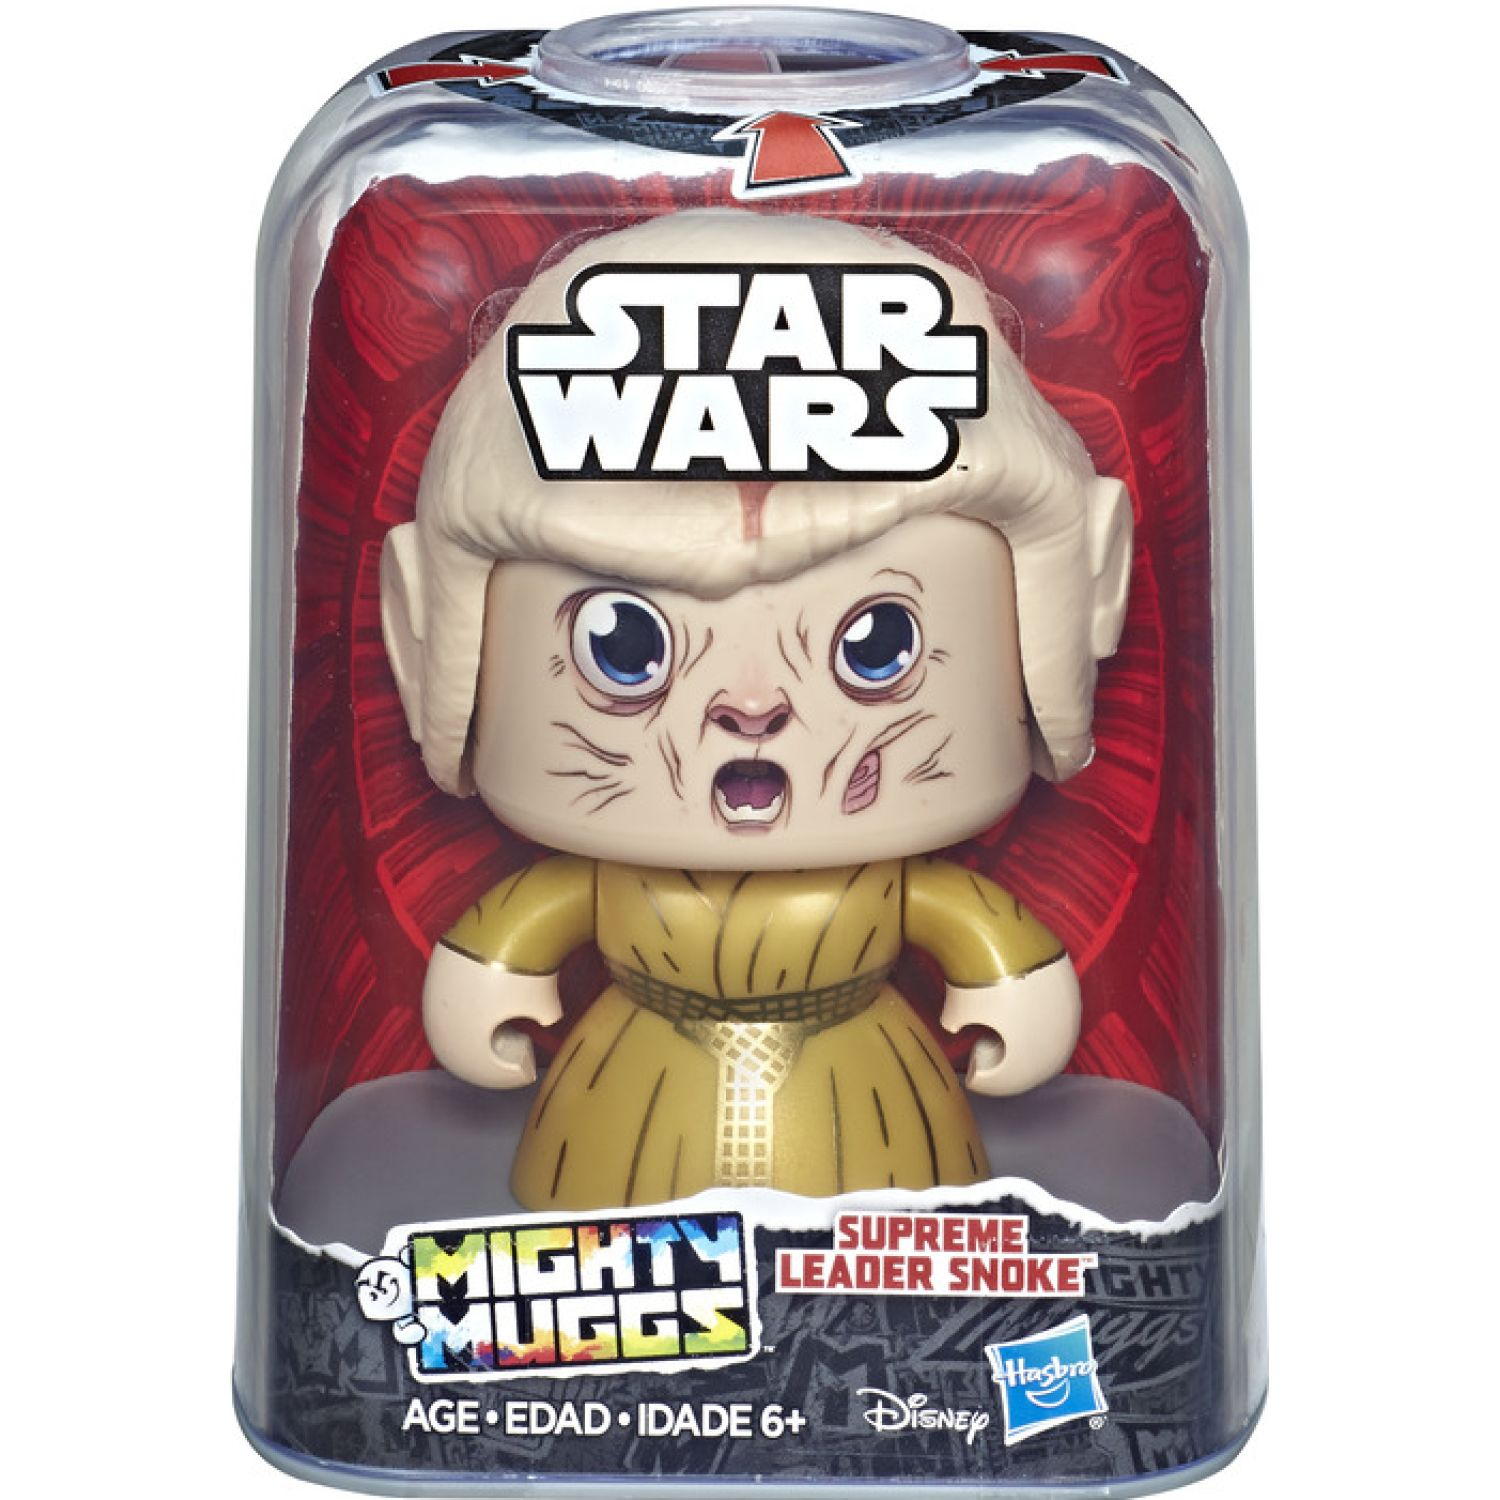 Star Wars sw mm e7 supreme leader snoke Varios Figuras de acción